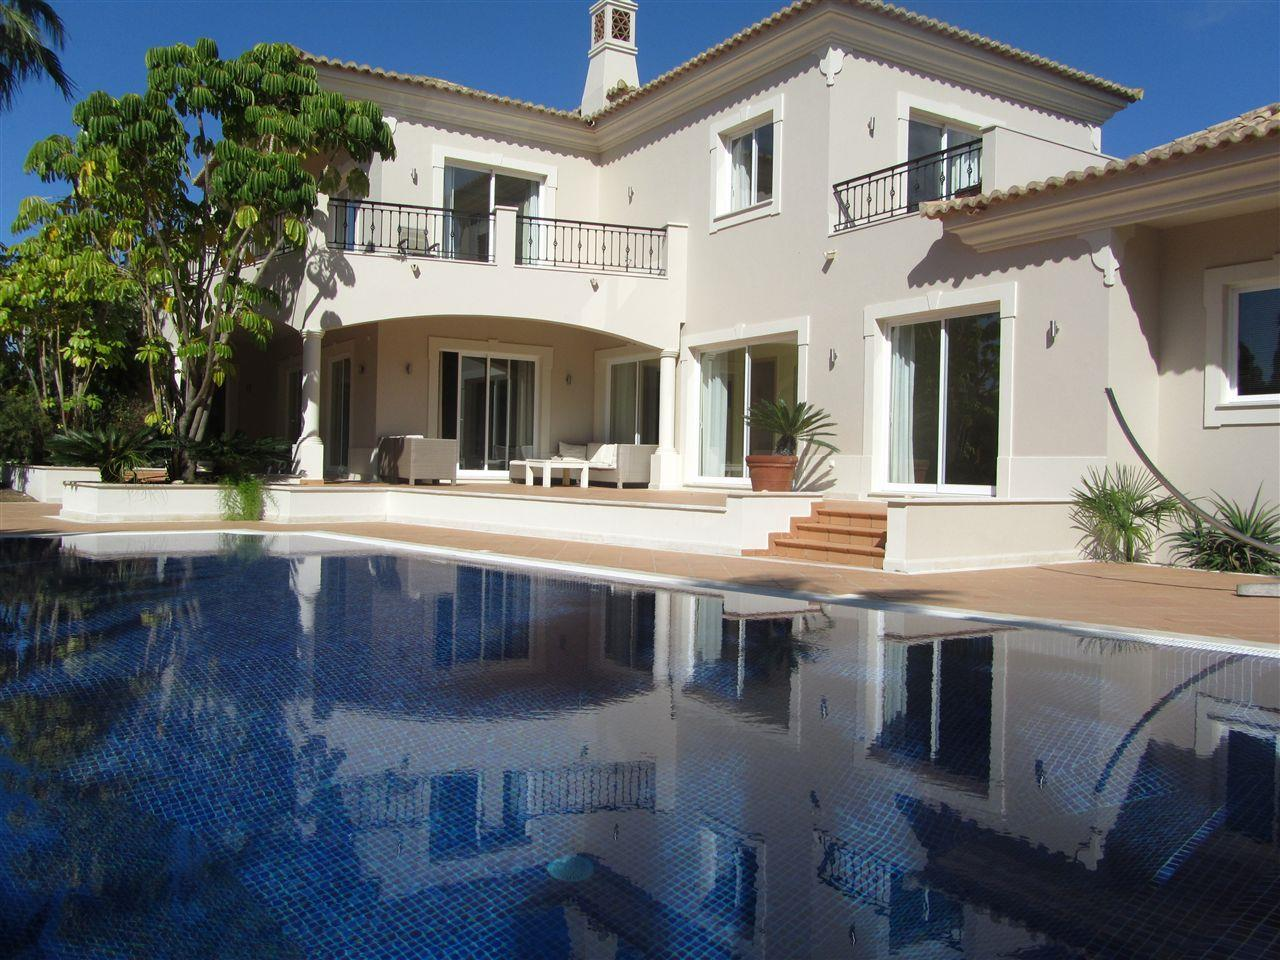 Single Family Home for Sale at House, 4 bedrooms, for Sale Loule, Algarve 8135- Portugal